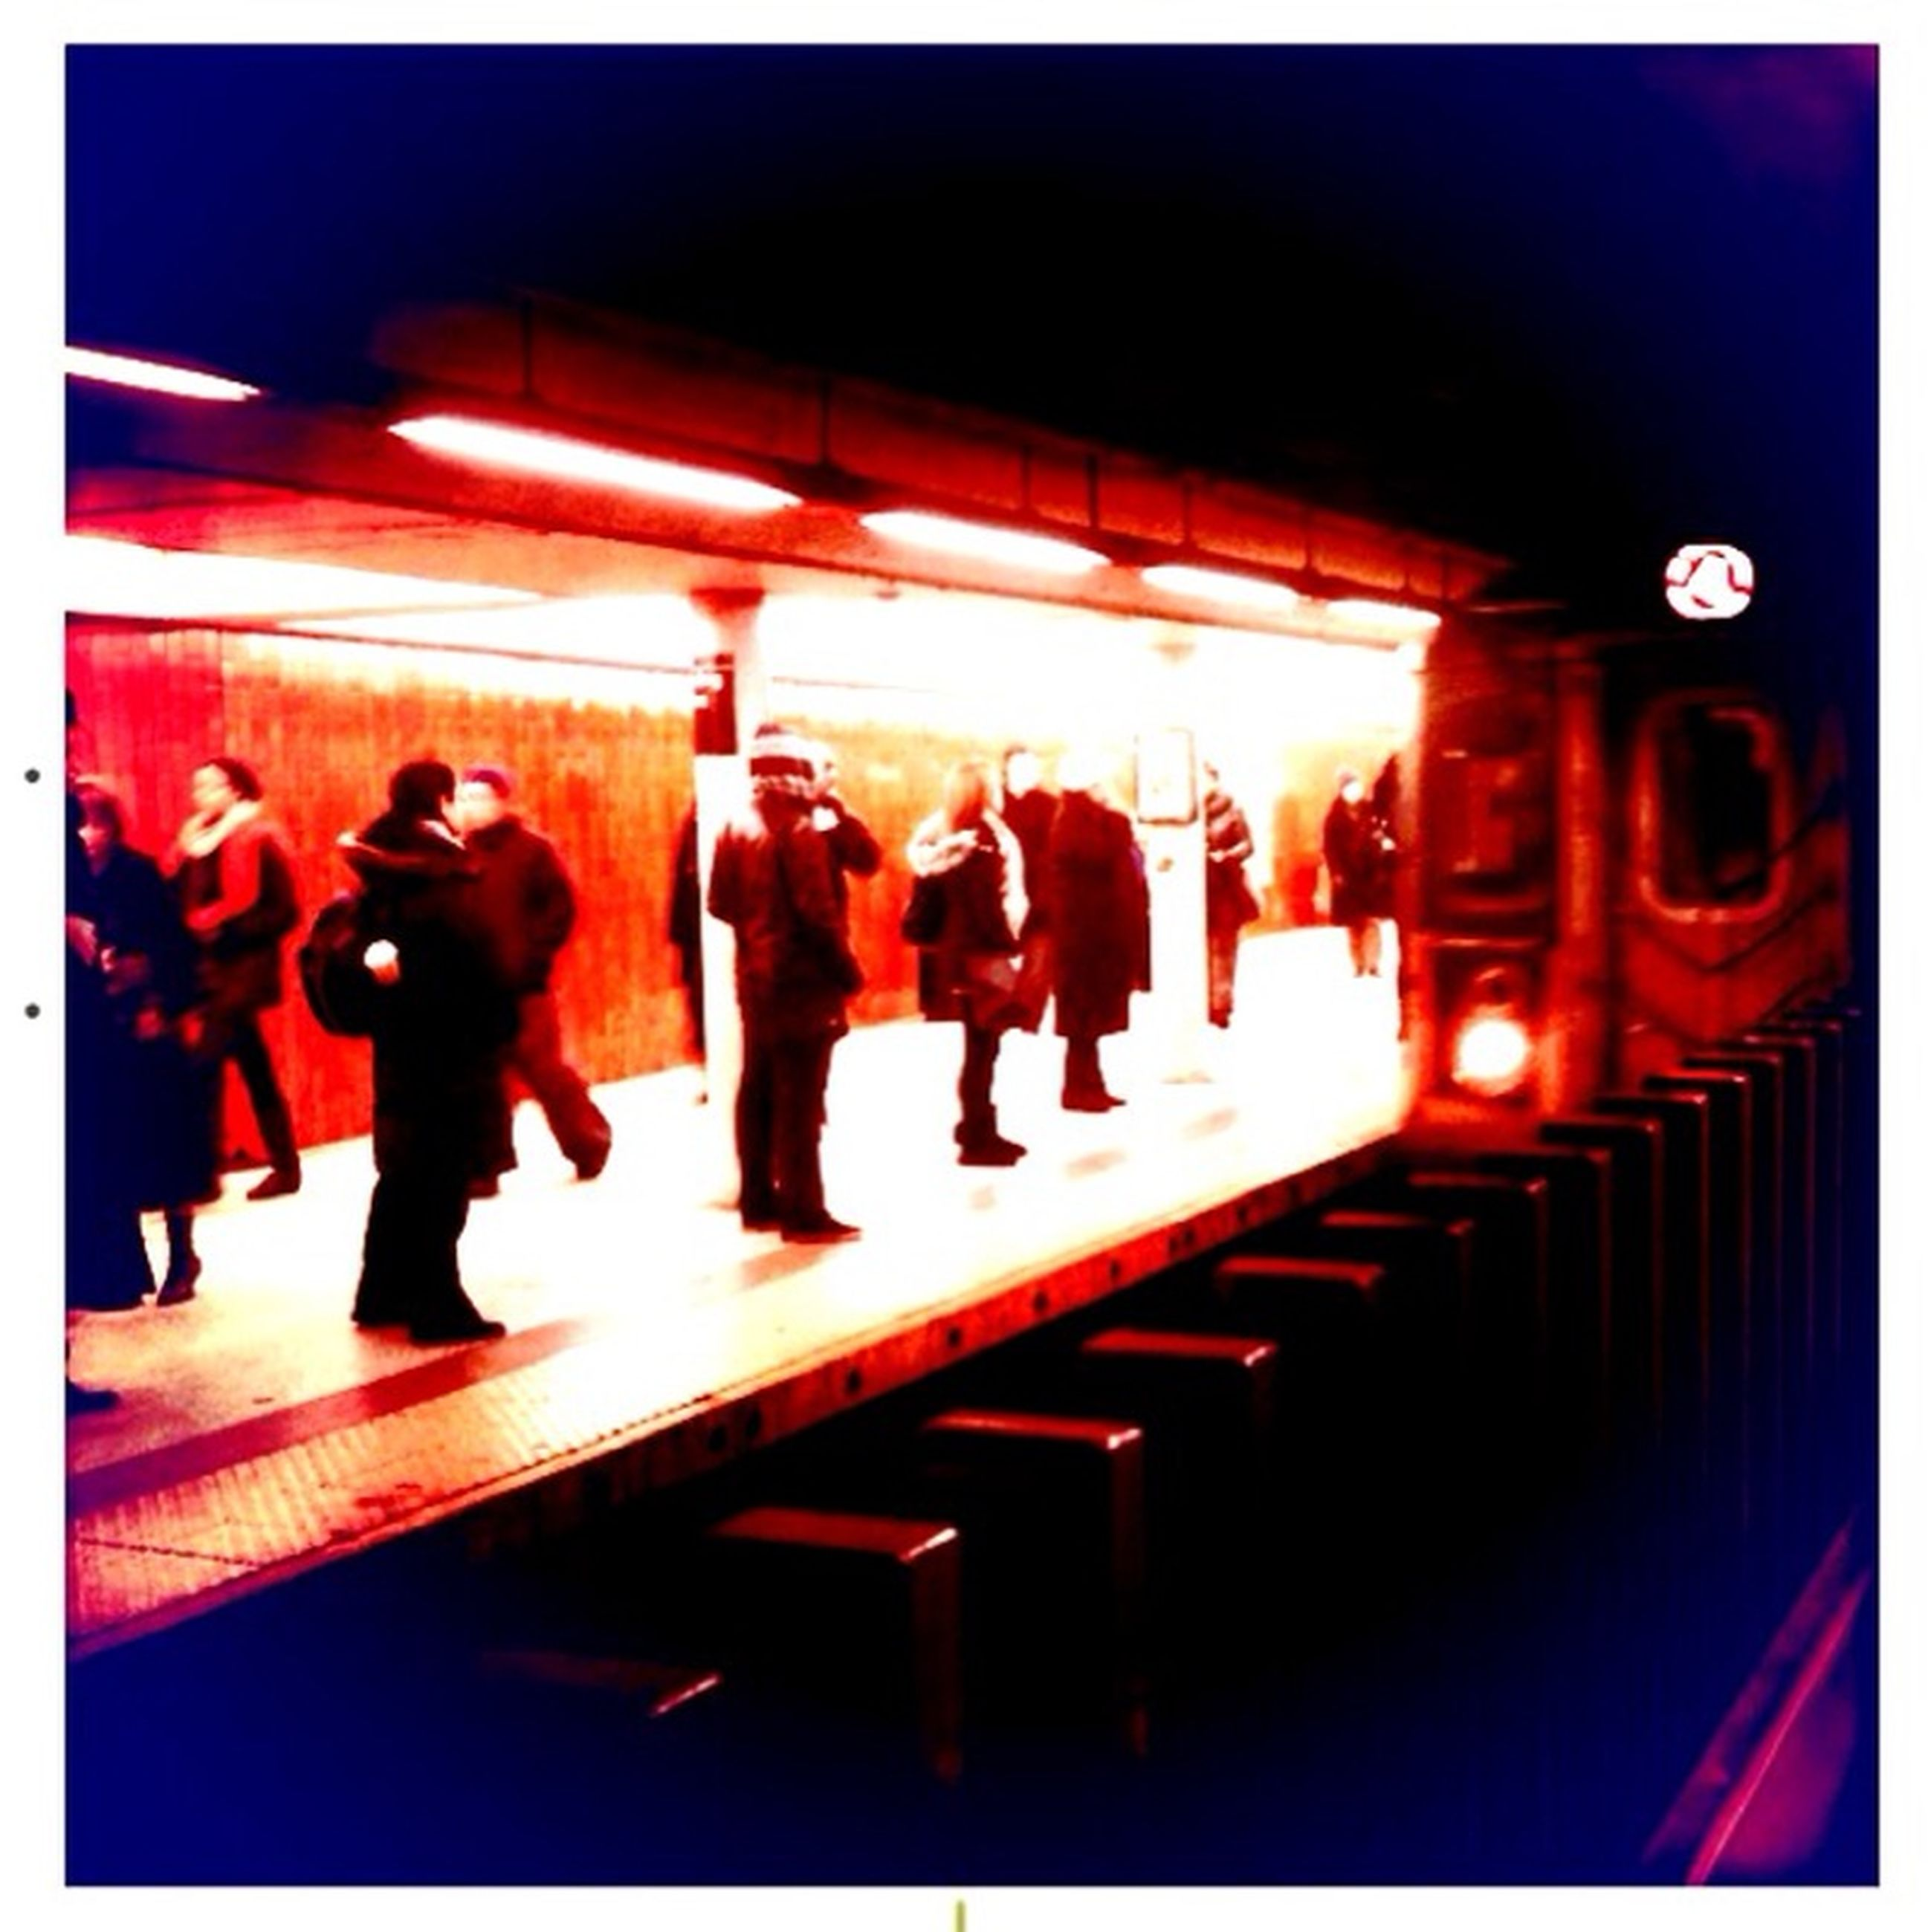 indoors, transfer print, illuminated, auto post production filter, lifestyles, men, leisure activity, person, night, standing, lighting equipment, full length, large group of people, subway station, red, walking, group of people, medium group of people